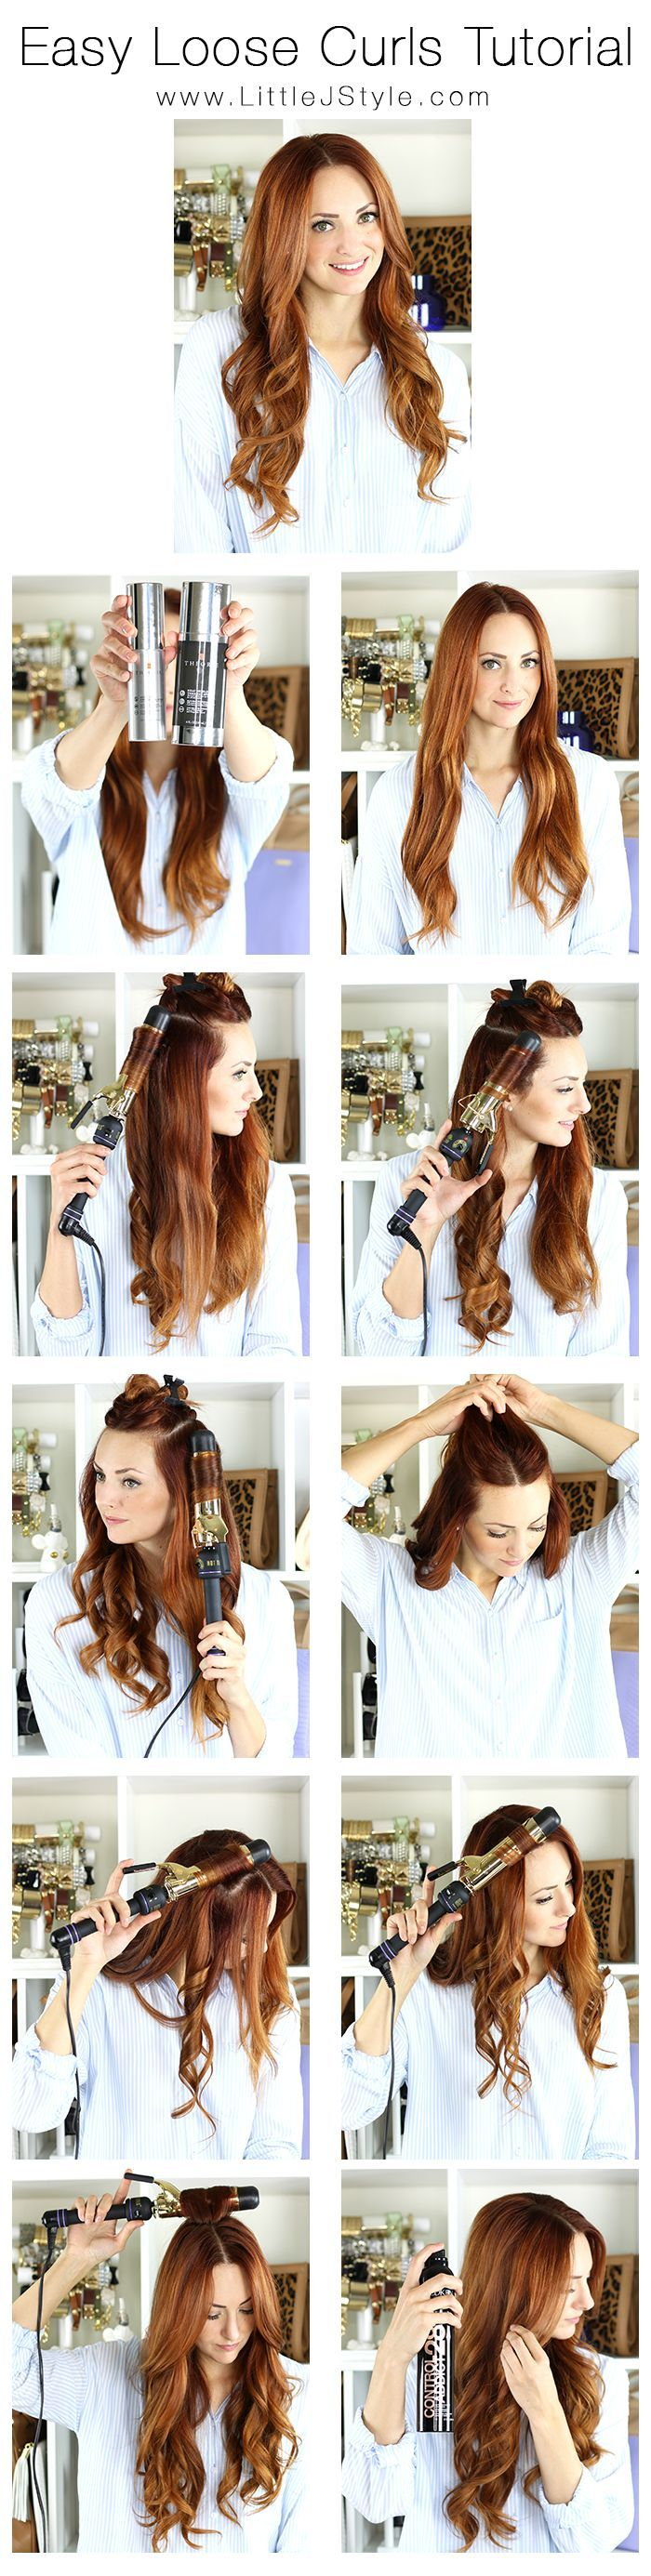 38 best Hairstyles Curls images on Pinterest